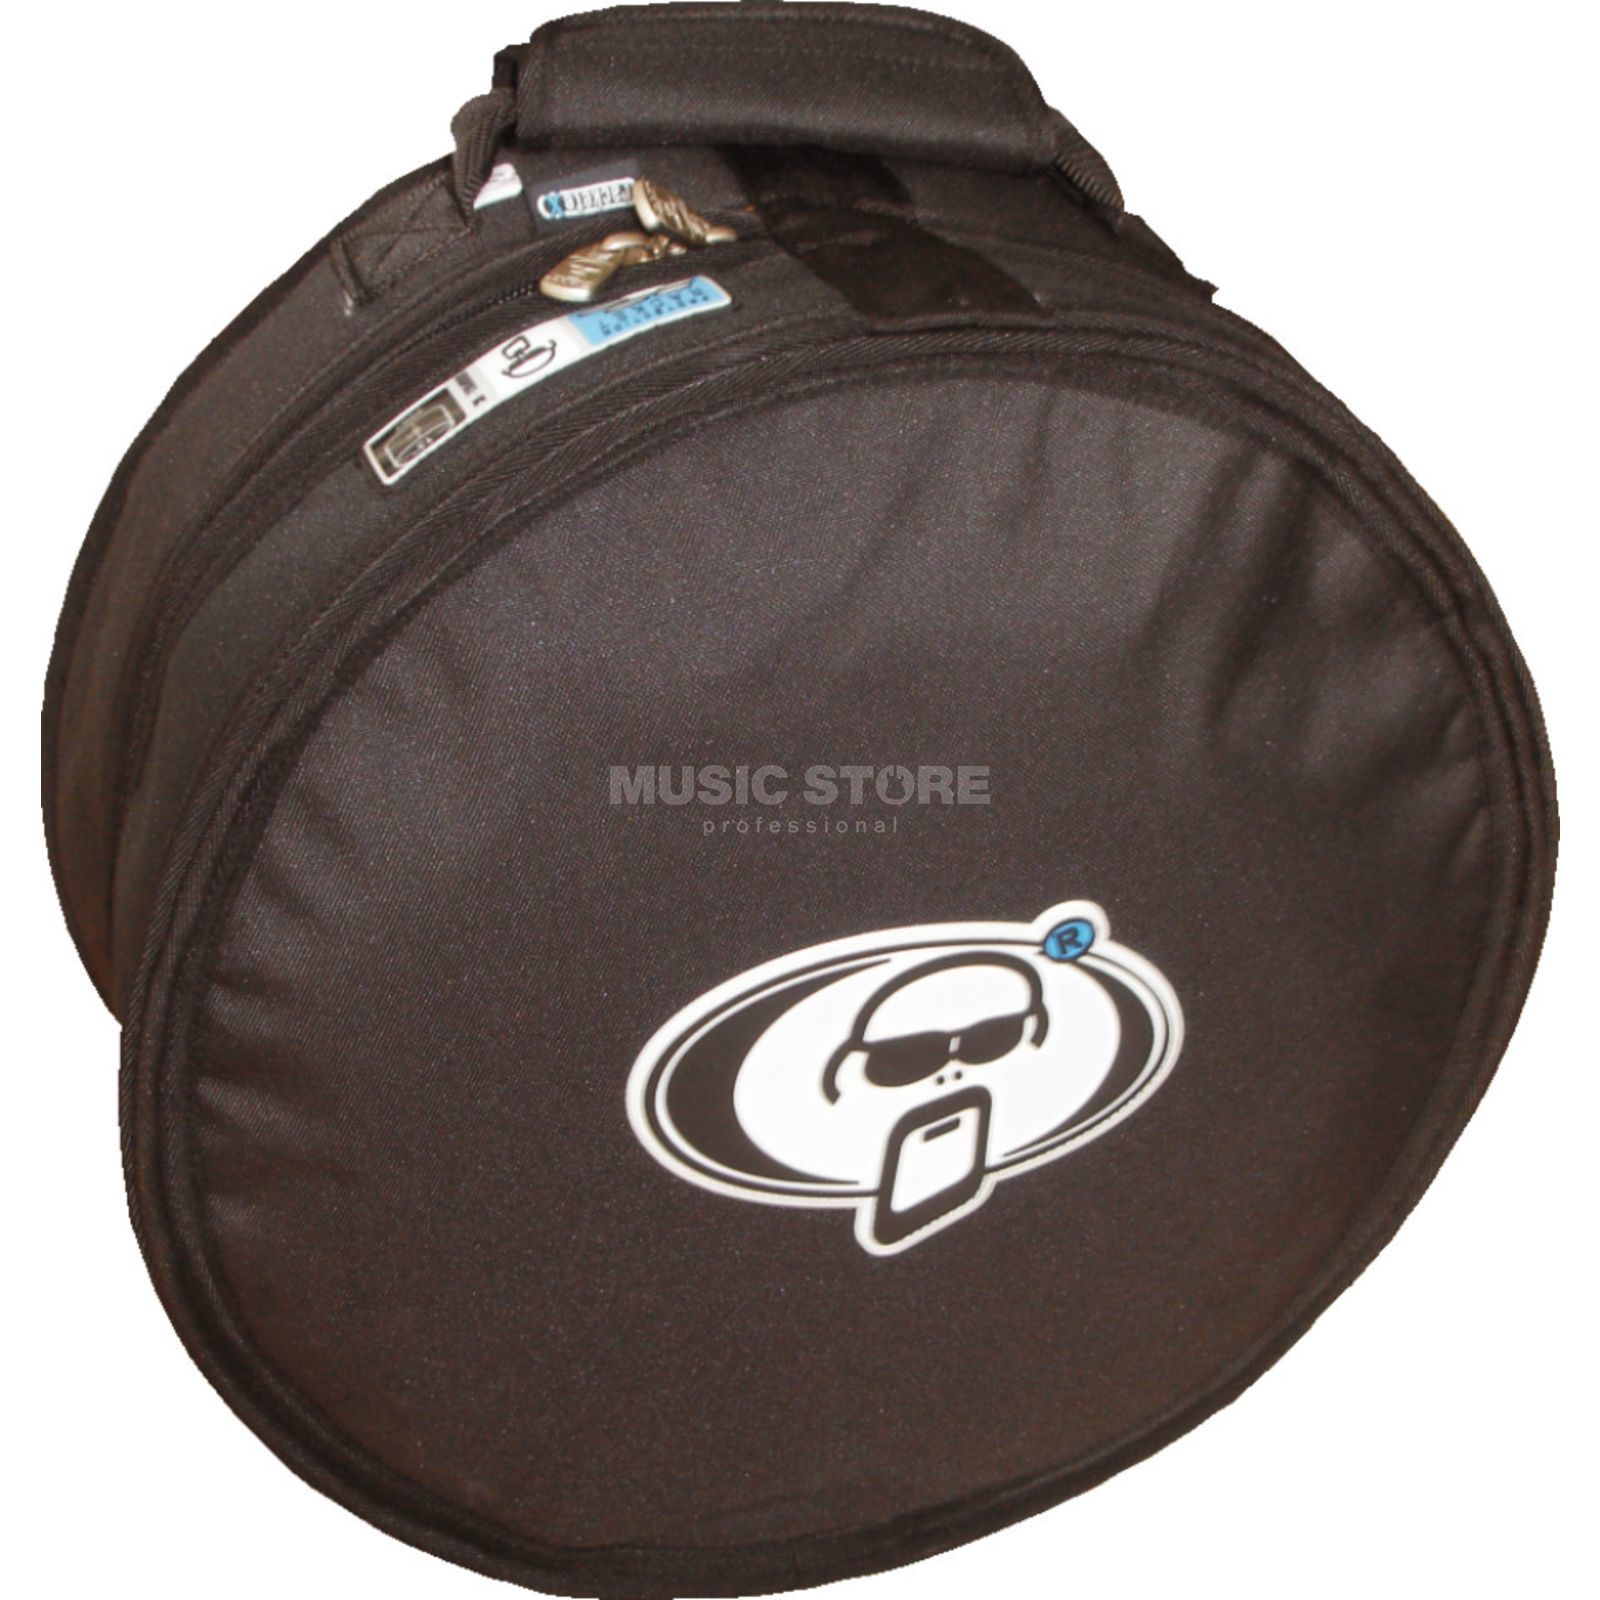 "Protection Racket Snare Bag 3014, 13""x6,5"" Produktbild"